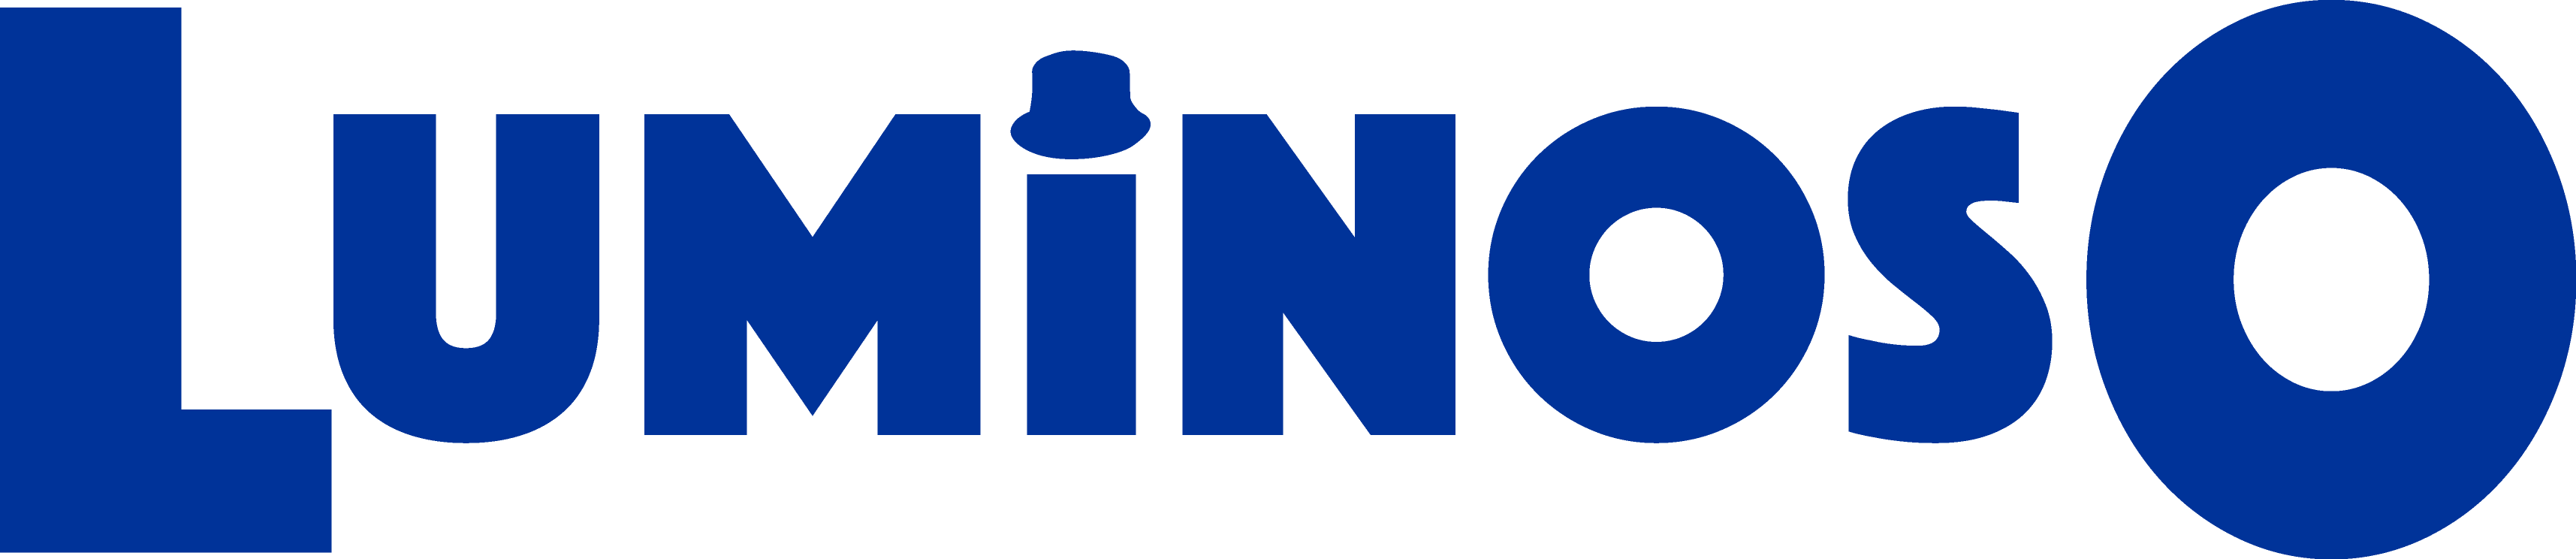 Luminoso_logo